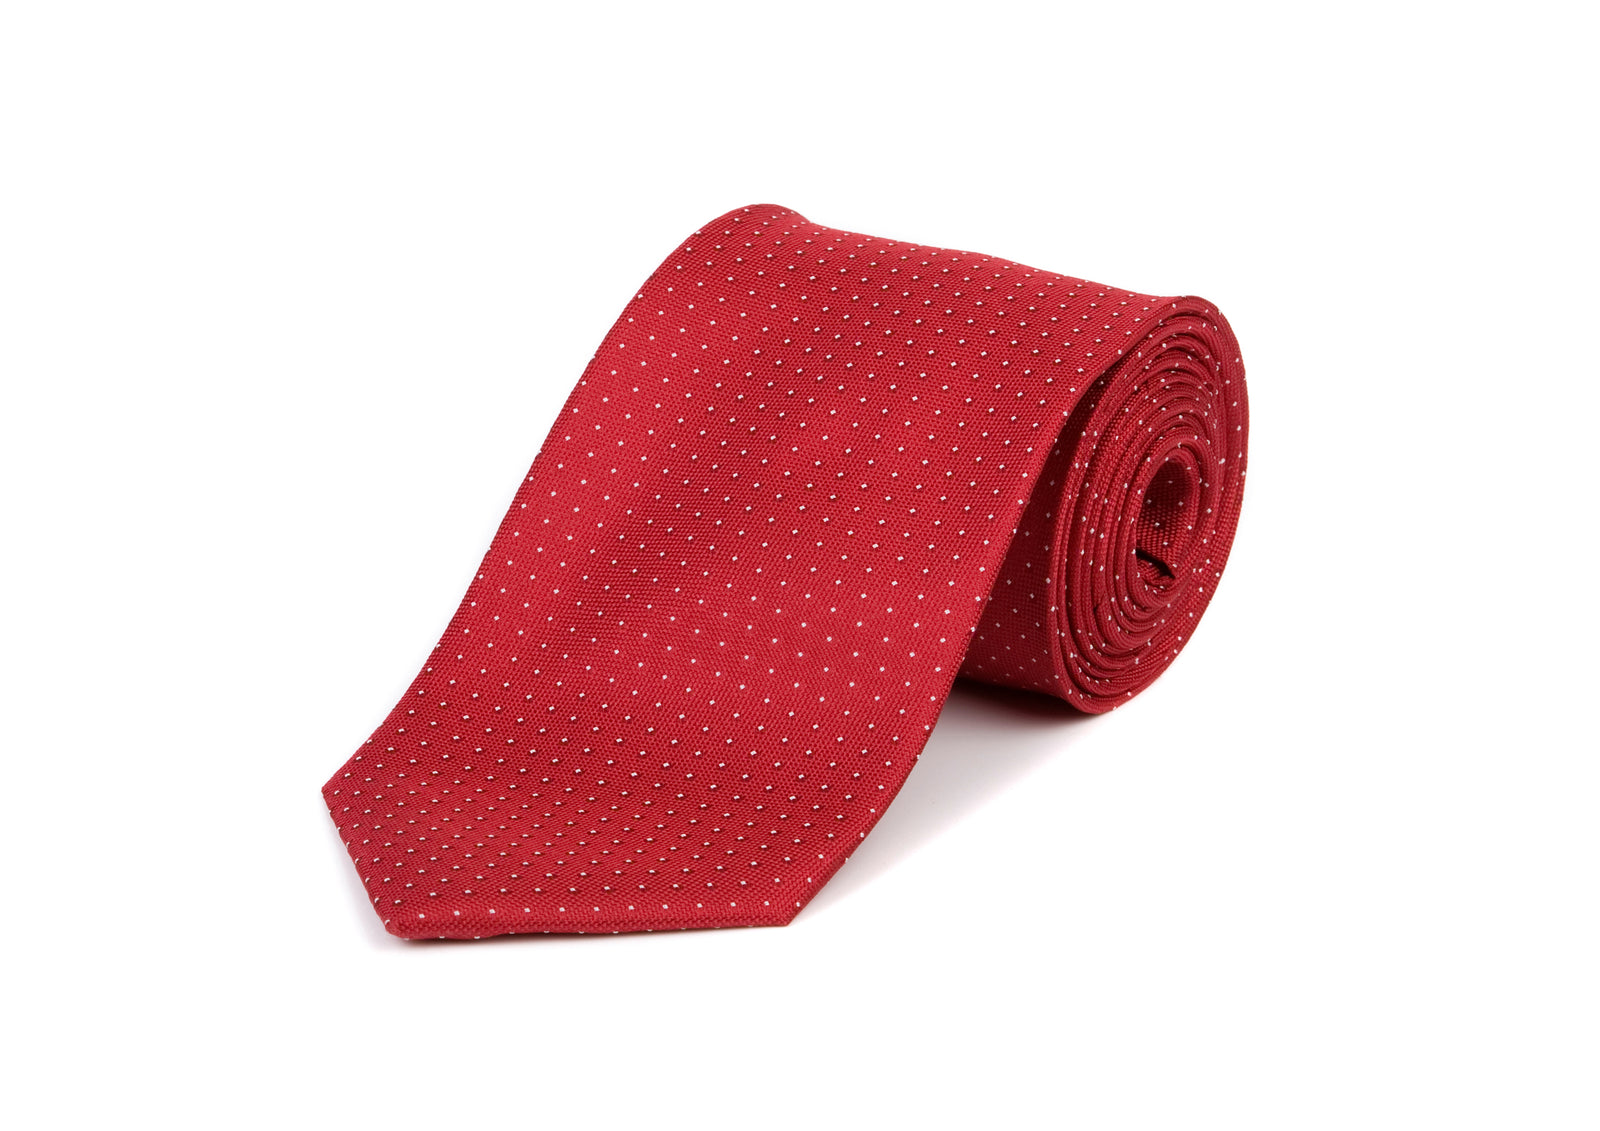 Red Dotted Tie 100% Silk Tie